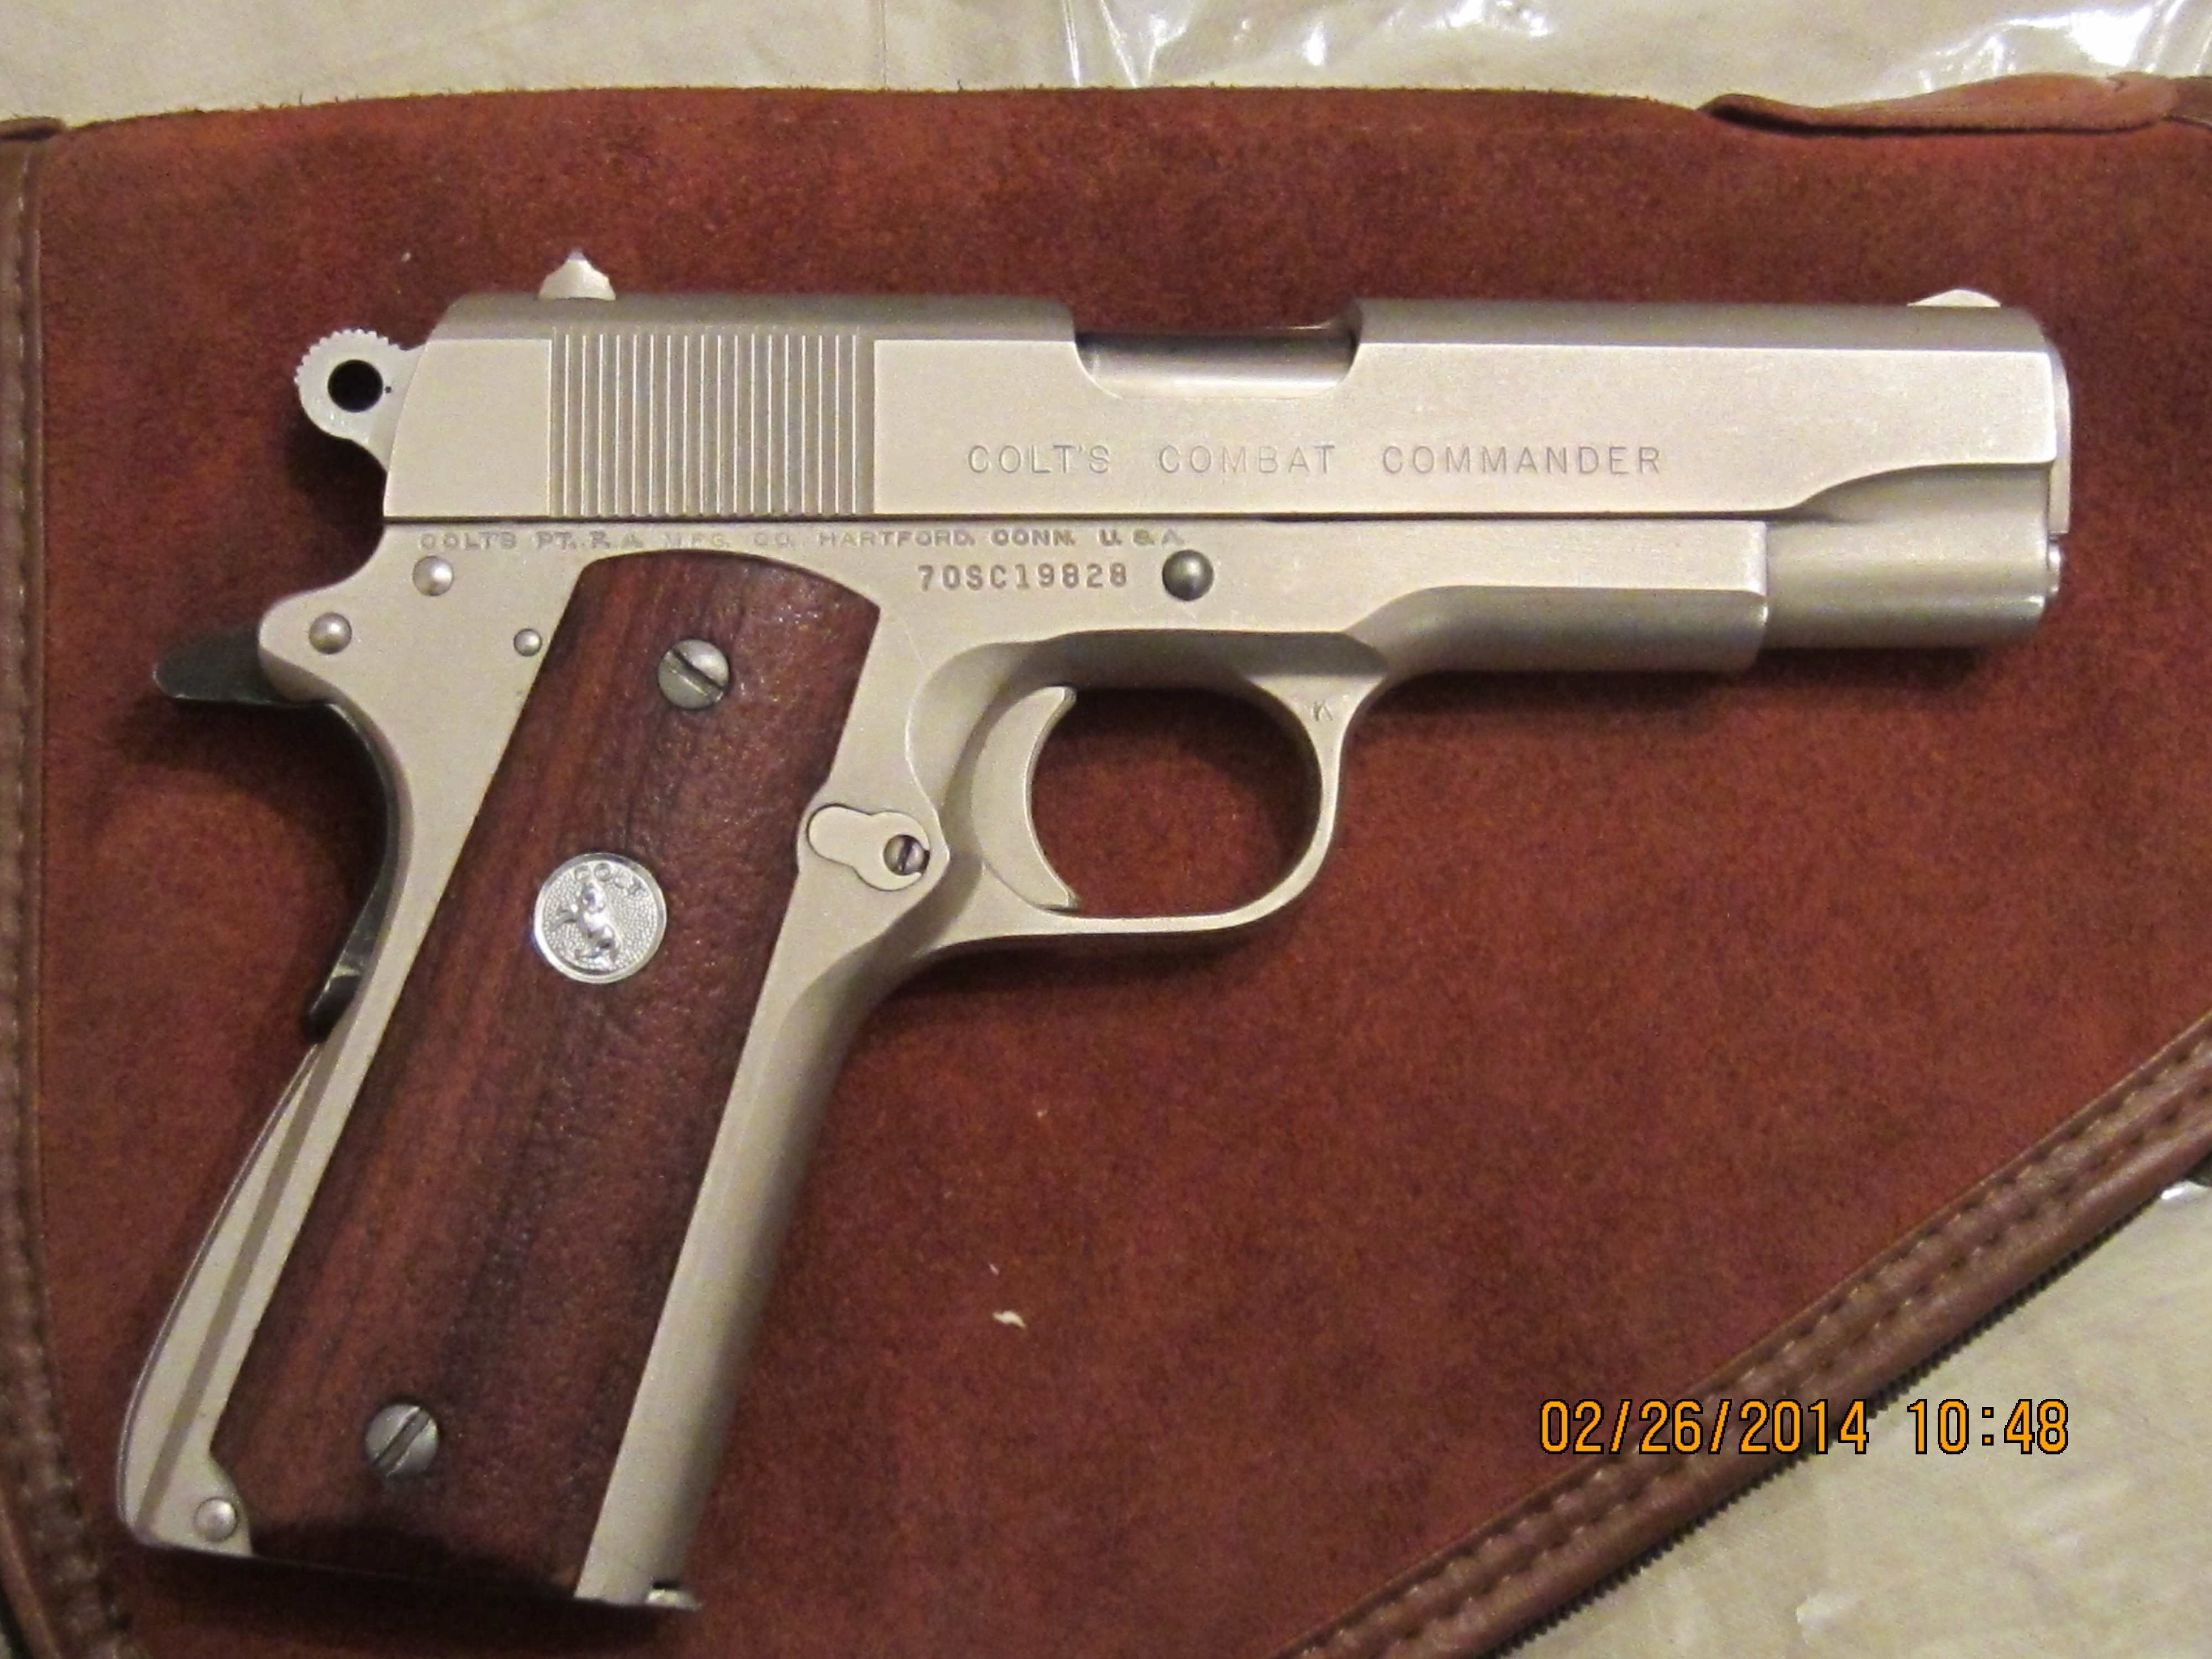 I knew I should not have bought  that 1911-img_0532.jpg